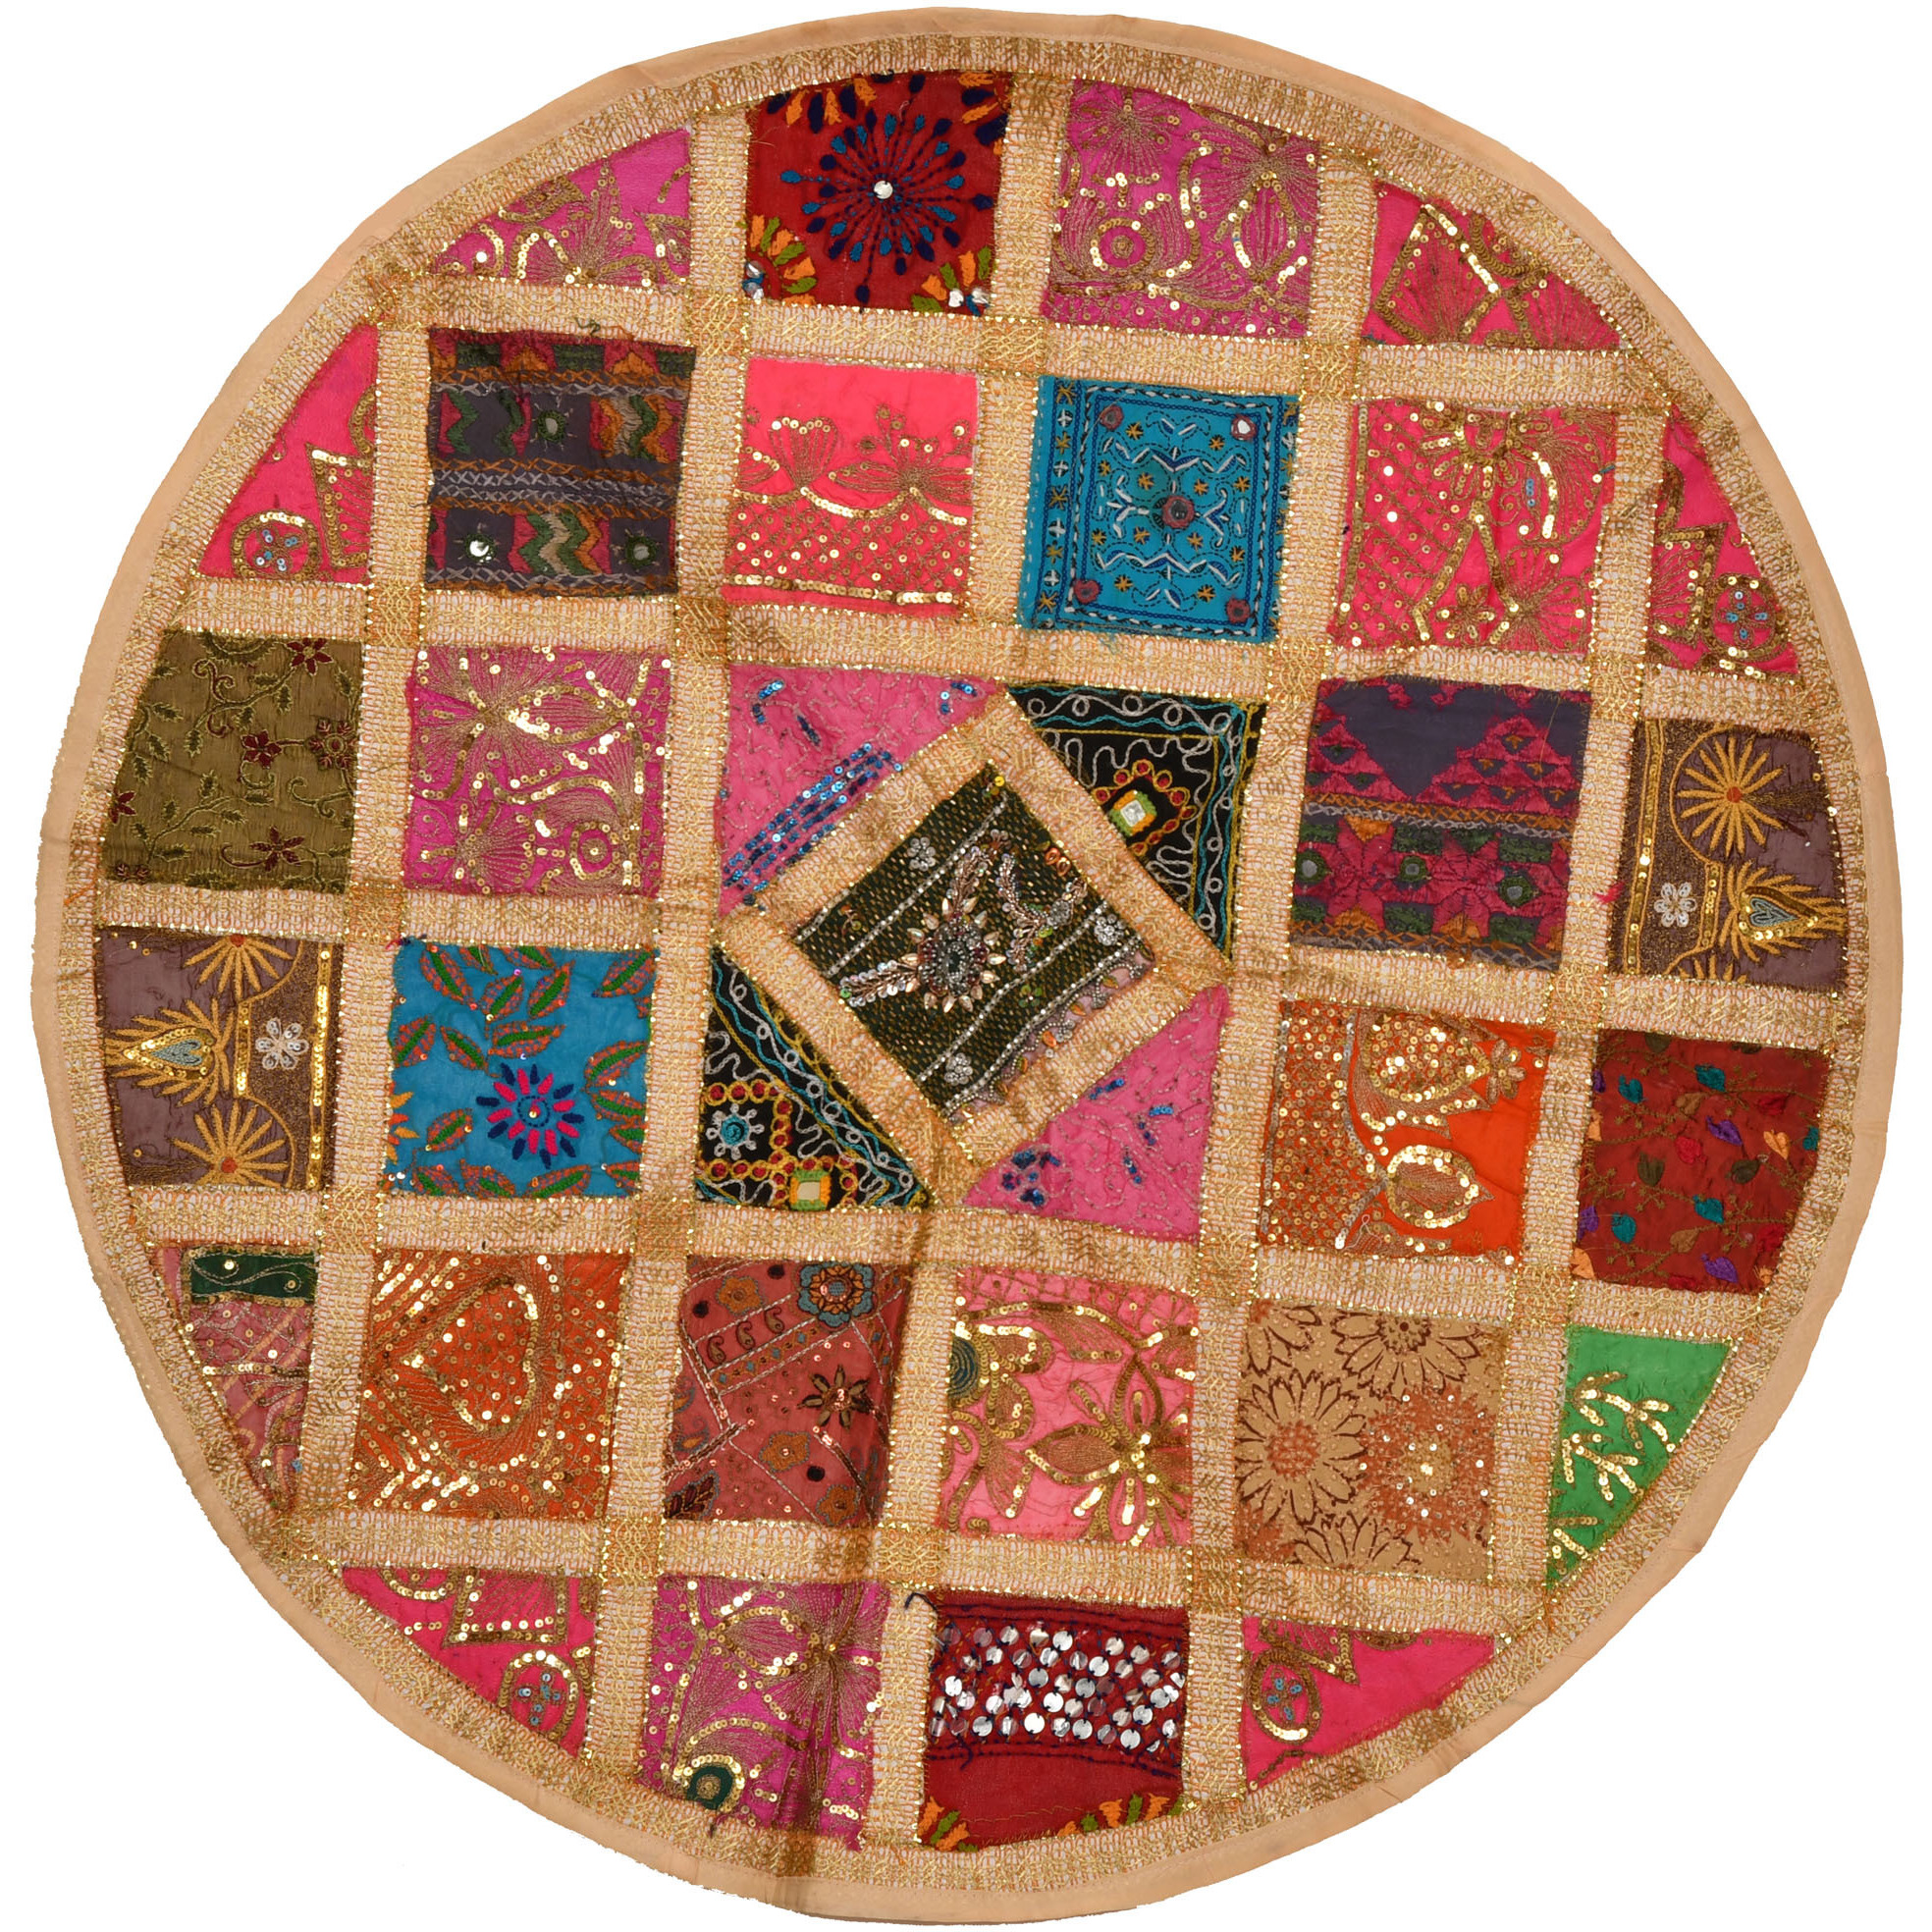 Circular Table Cover from Gujarat with Zari-Embroidered Beads and Sequins